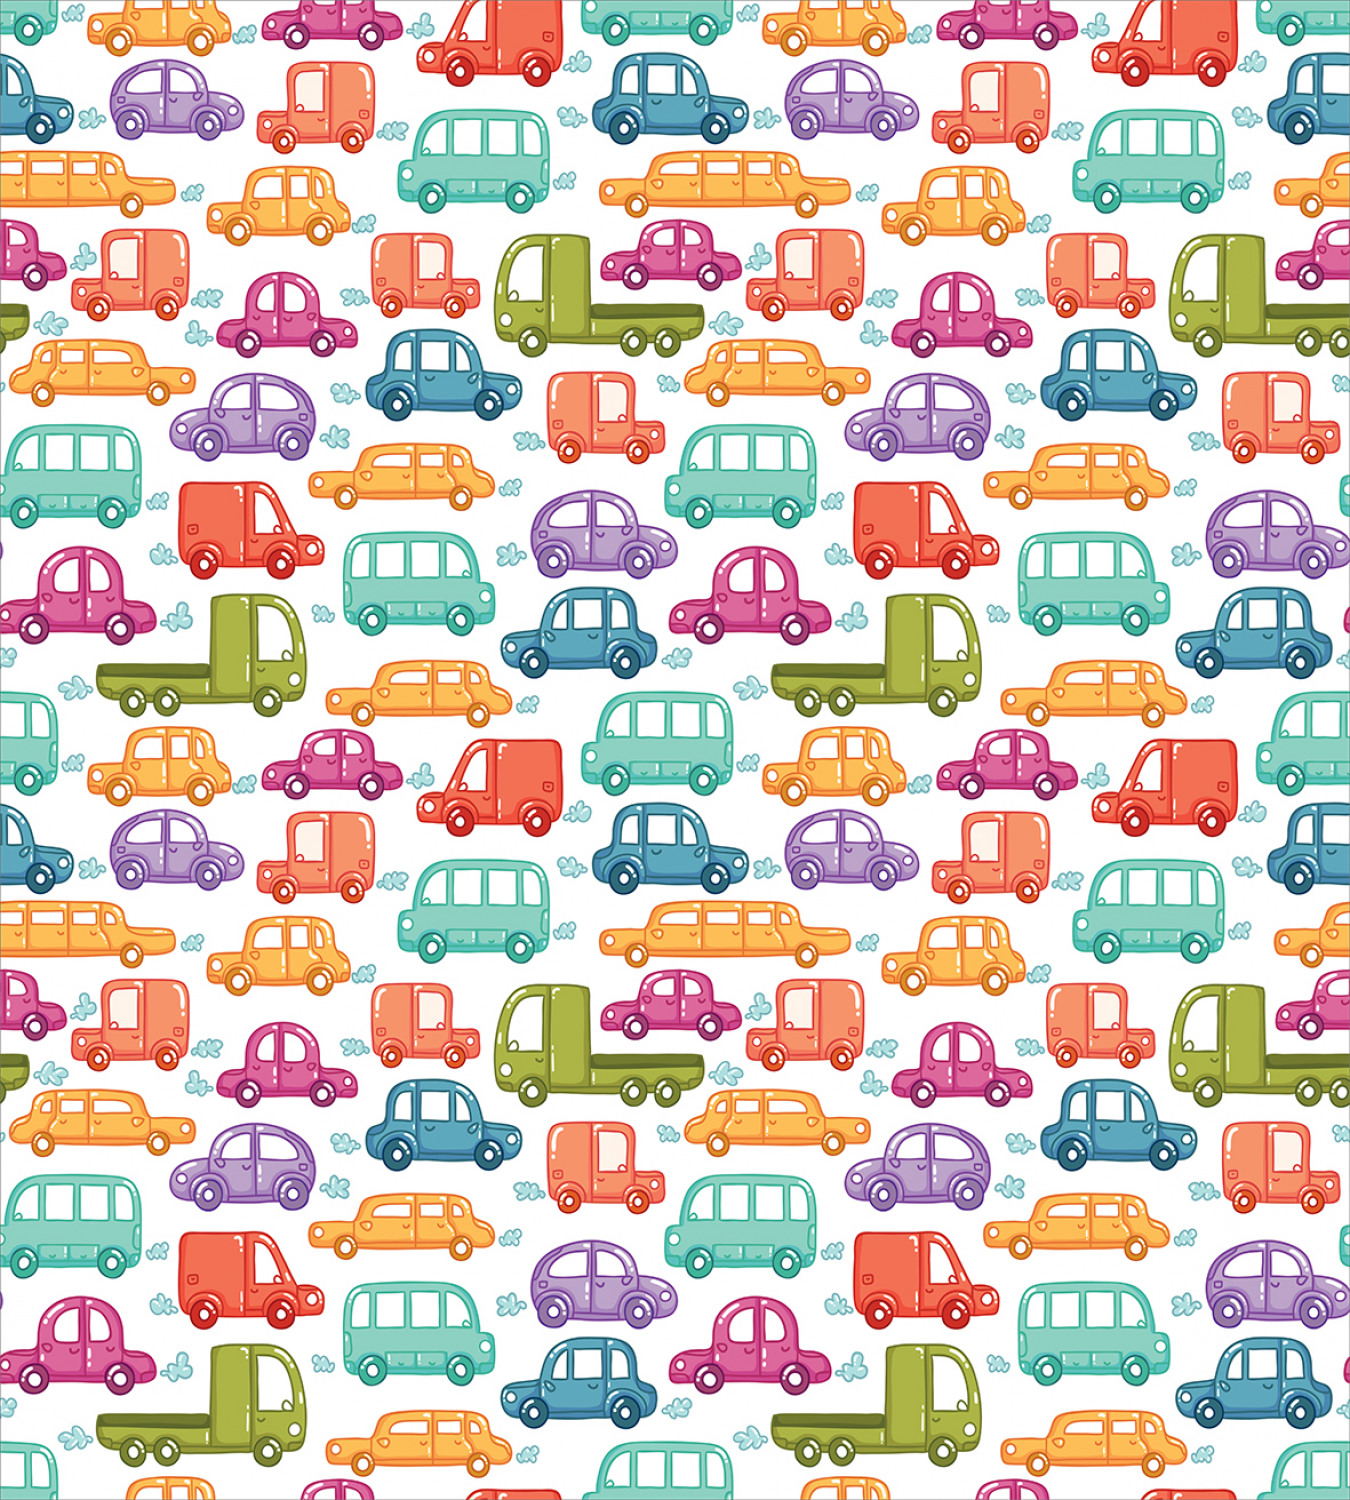 Colorful-Cars-Duvet-Cover-Set-Twin-Queen-King-Sizes-with-Pillow-Shams-Bedding miniature 83